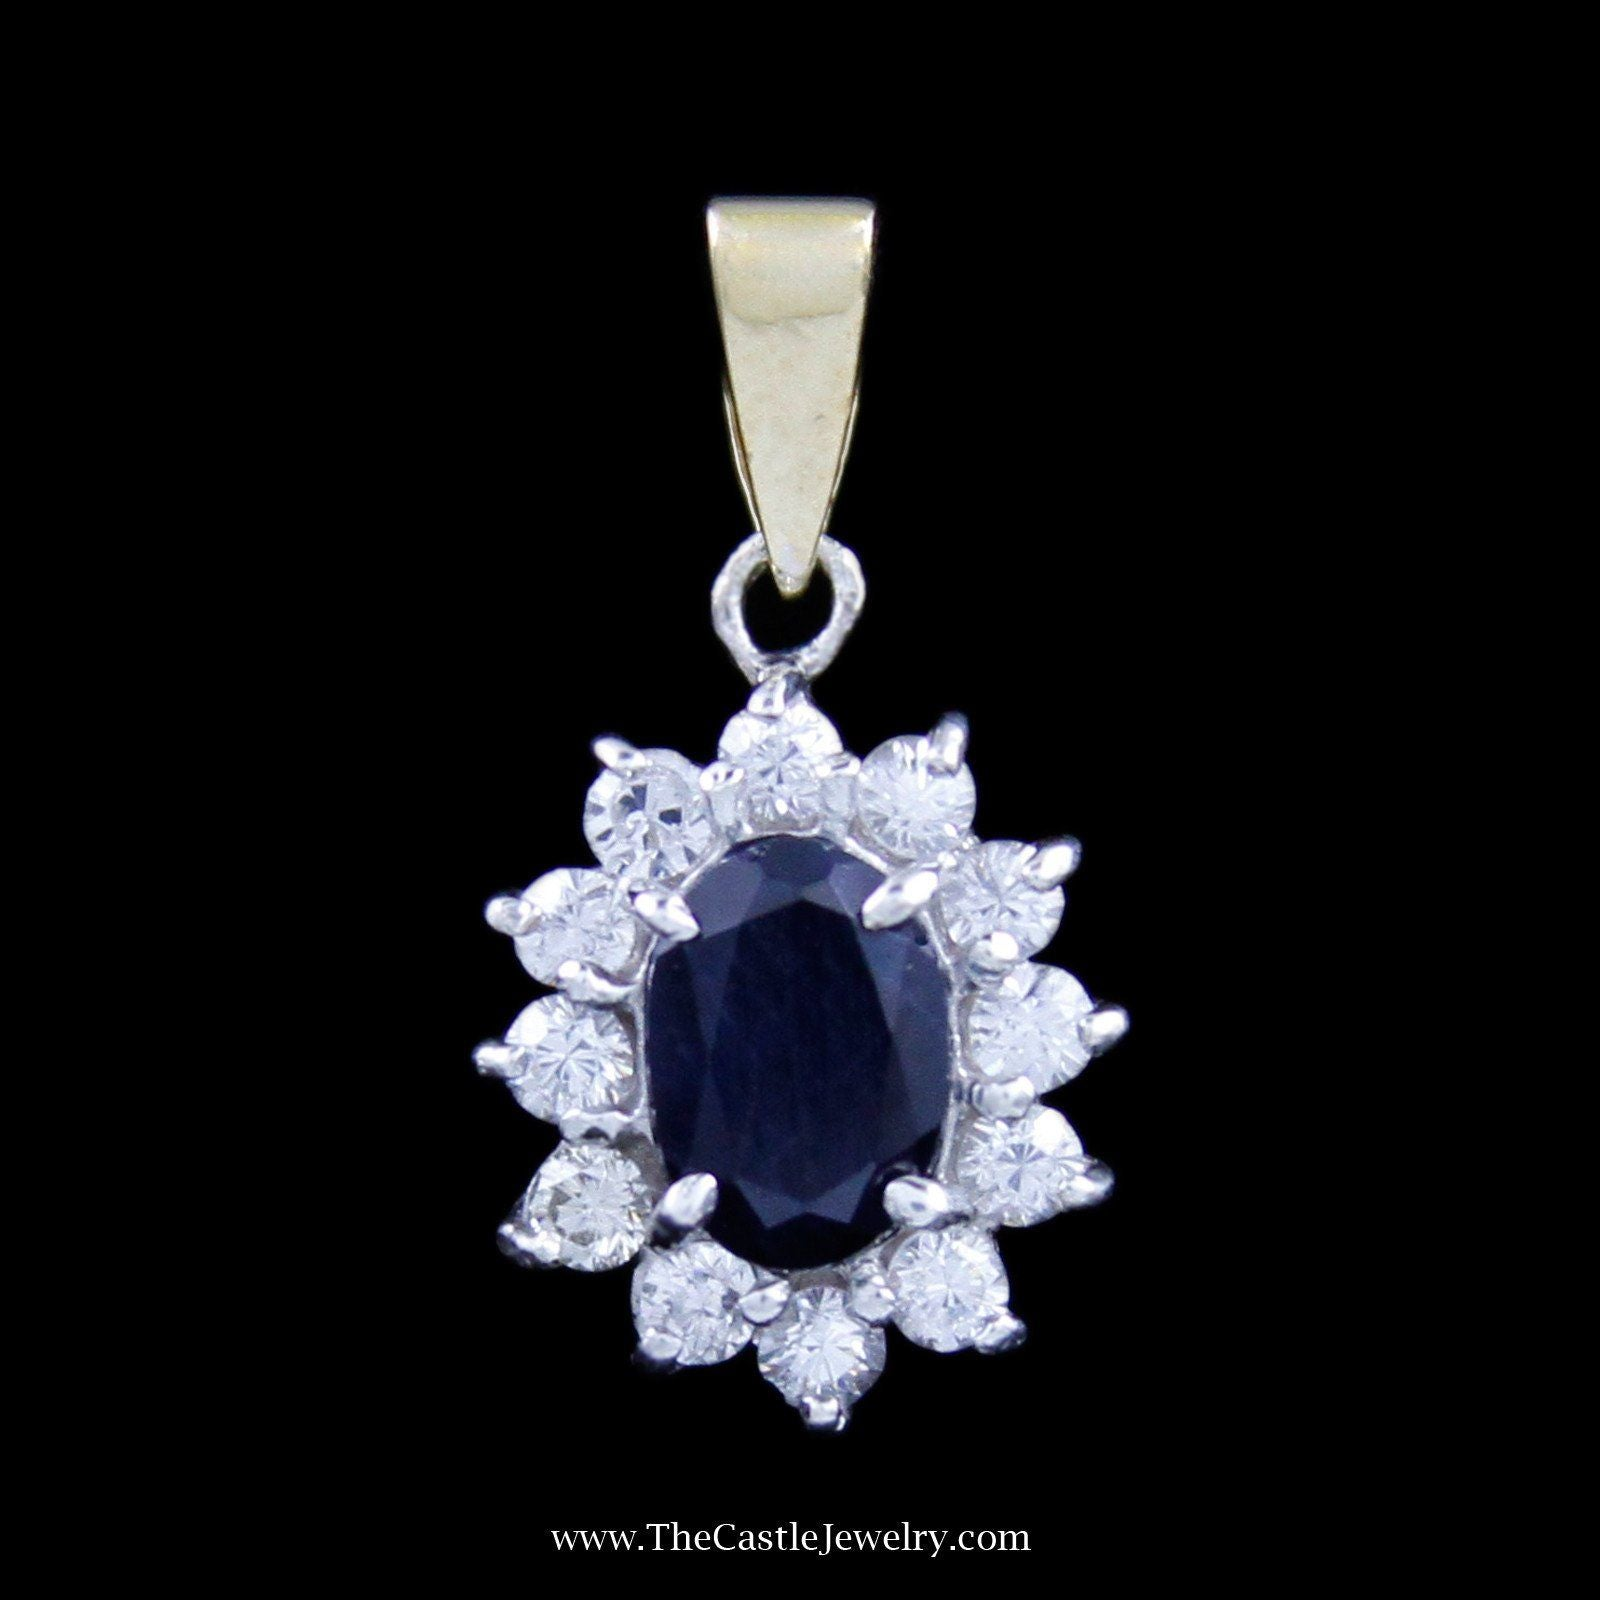 Oval Sapphire Pendant with Round Brilliant Cut Diamond Bezel in Two-Tone Gold